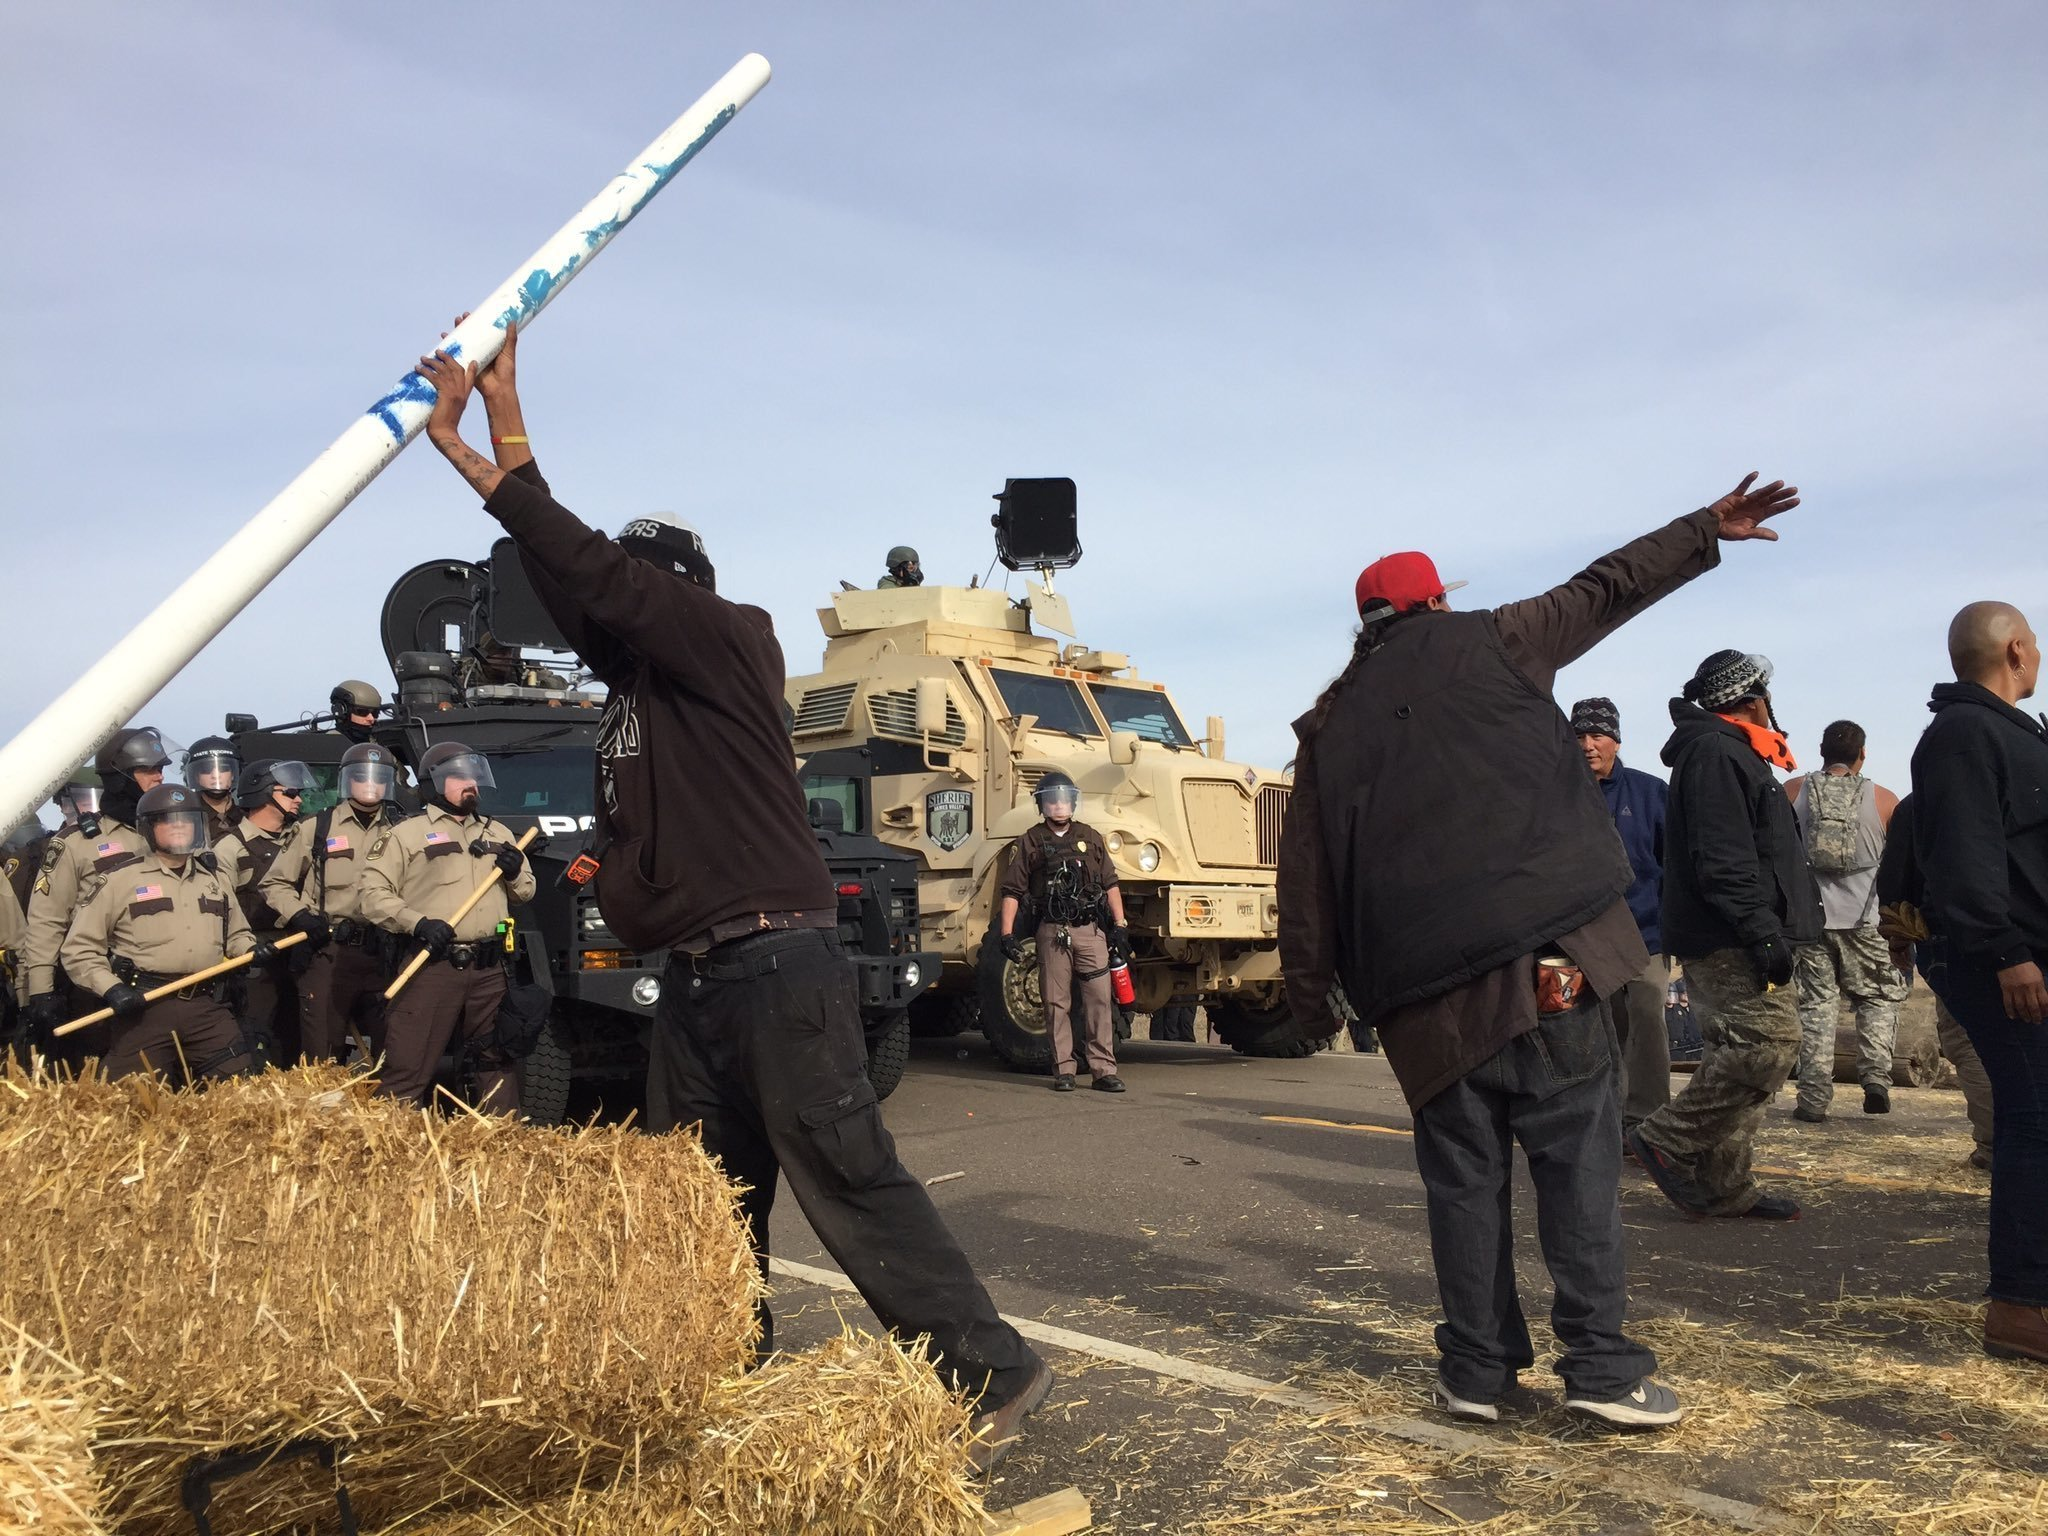 Dakota Access pipeline protesters confront law enforcement on Thursday, Oct. 27, near Cannon Ball, N.D. The months-long dispute over the four-state, $3.8 billion pipeline reached a crisis point when the protesters set up camp on land owned by pipeline developer Energy Transfer Partners. The disputed area is just to the north of a more permanent and larger encampment on federally-owned land where hundreds of protesters have camped for months.